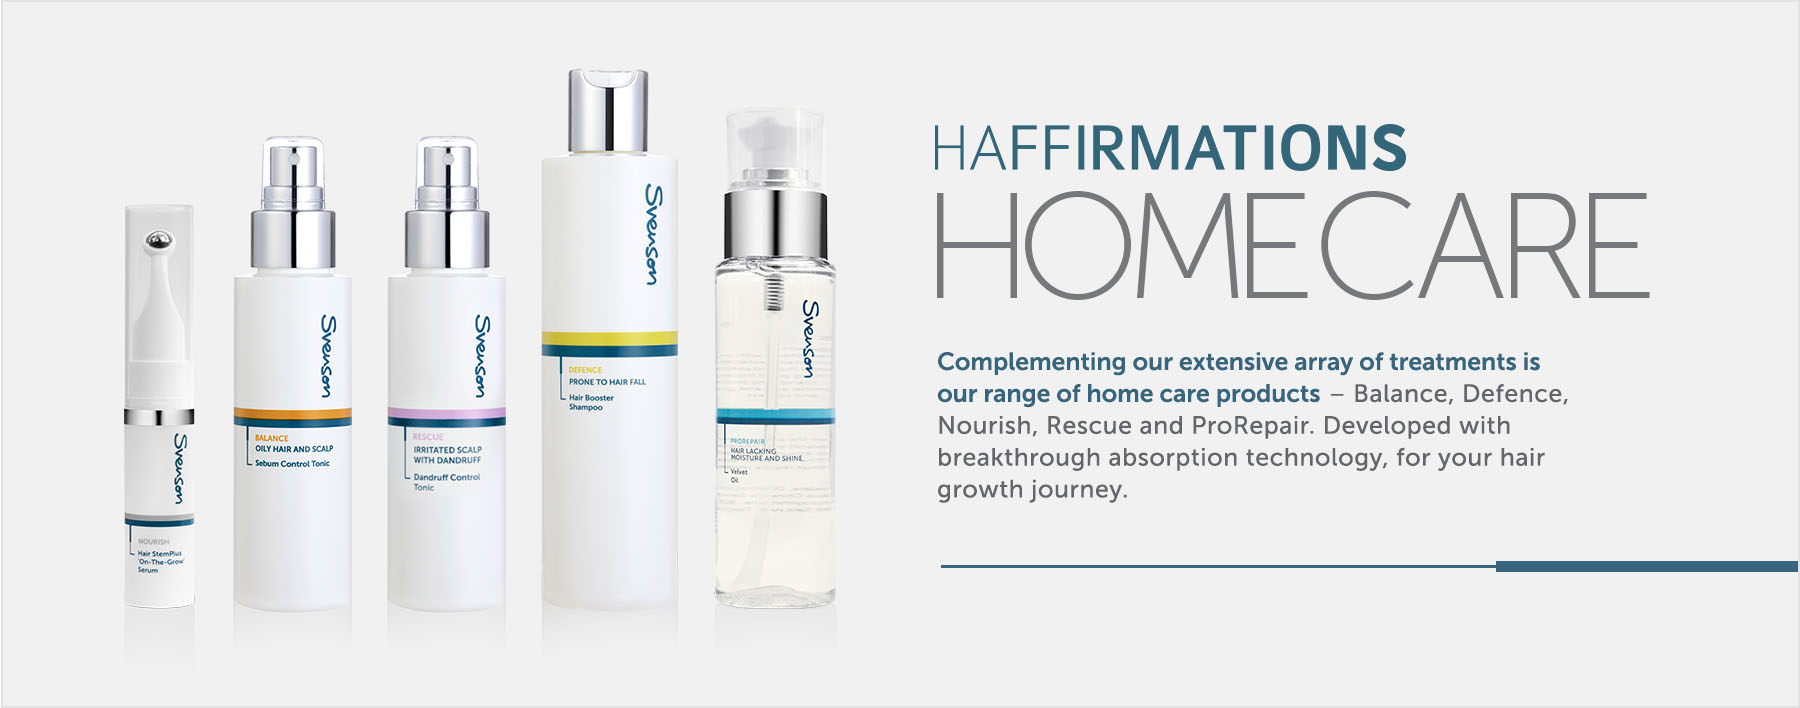 Haffirmations Home Care